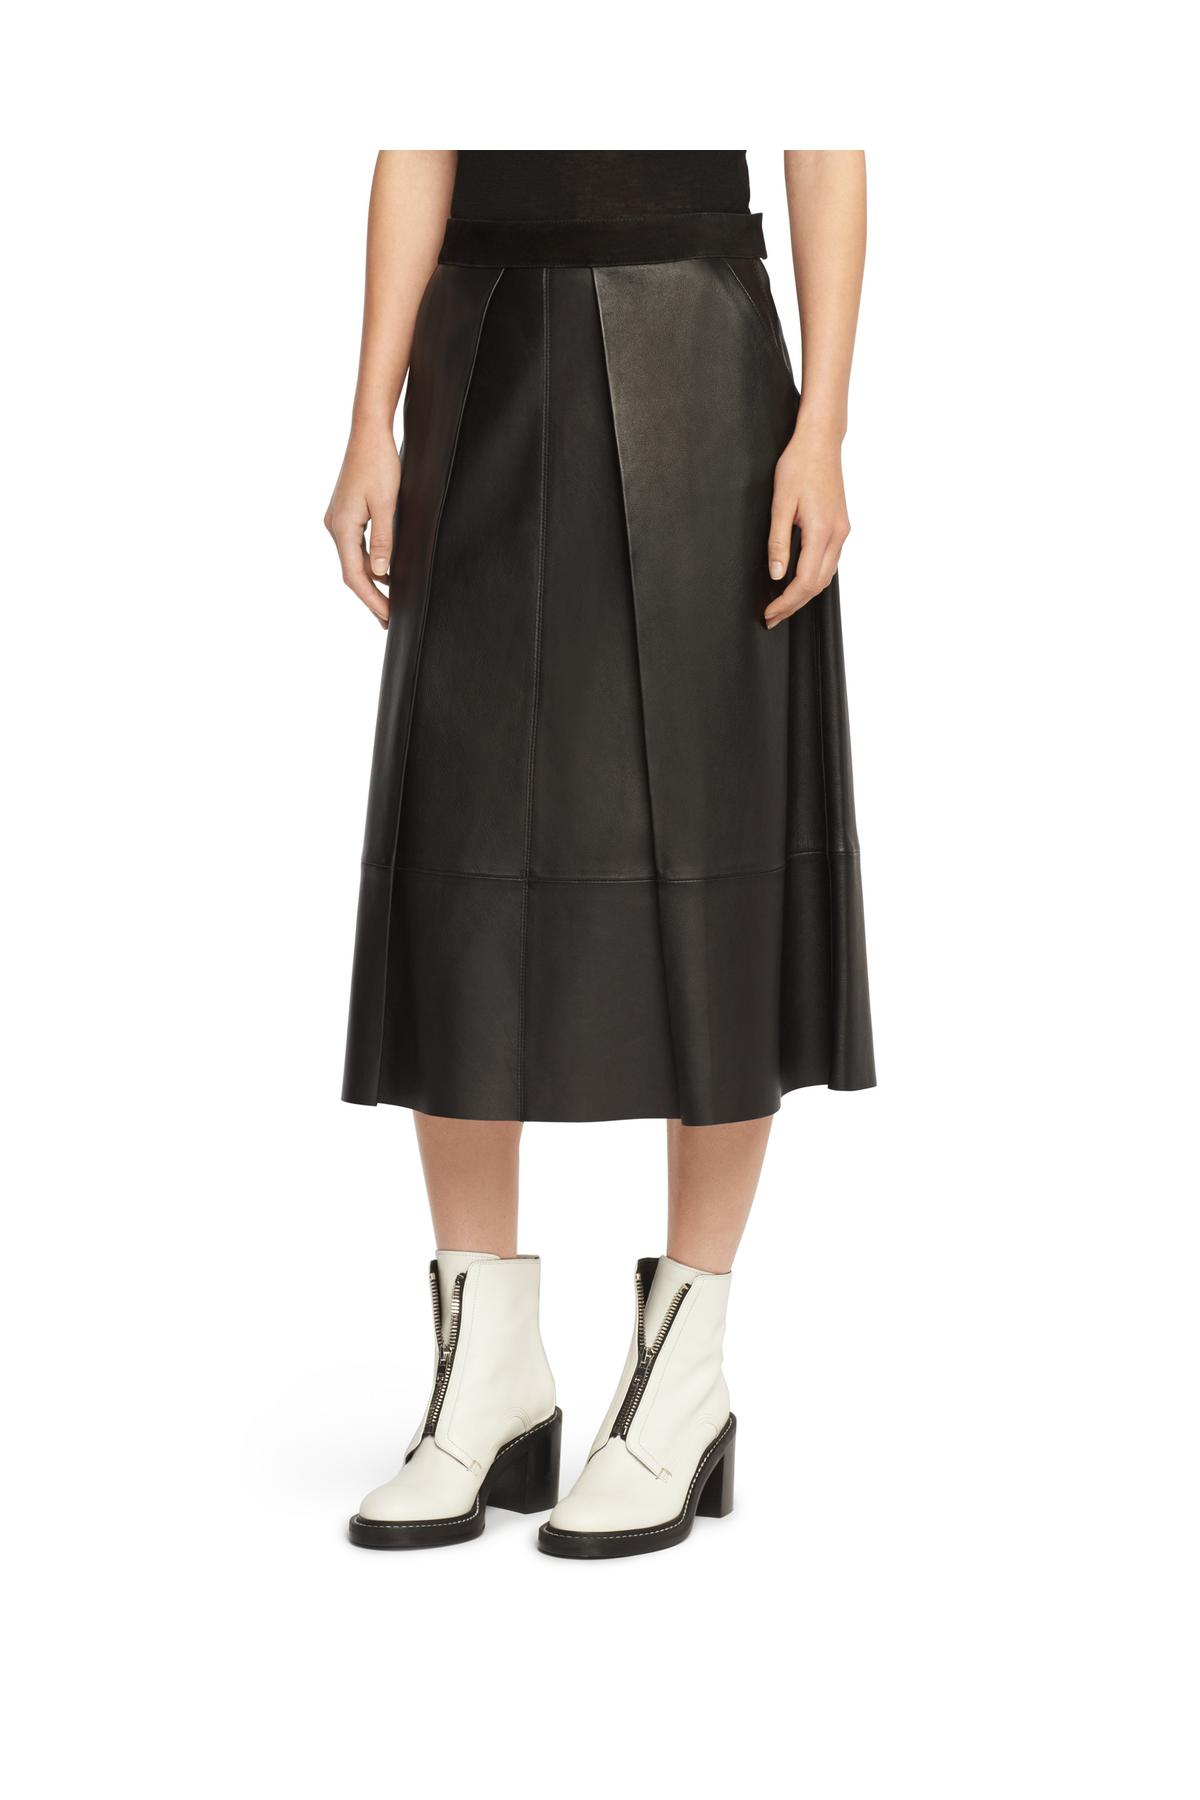 RAG & BONE ROWE SKIRT- LEATHER